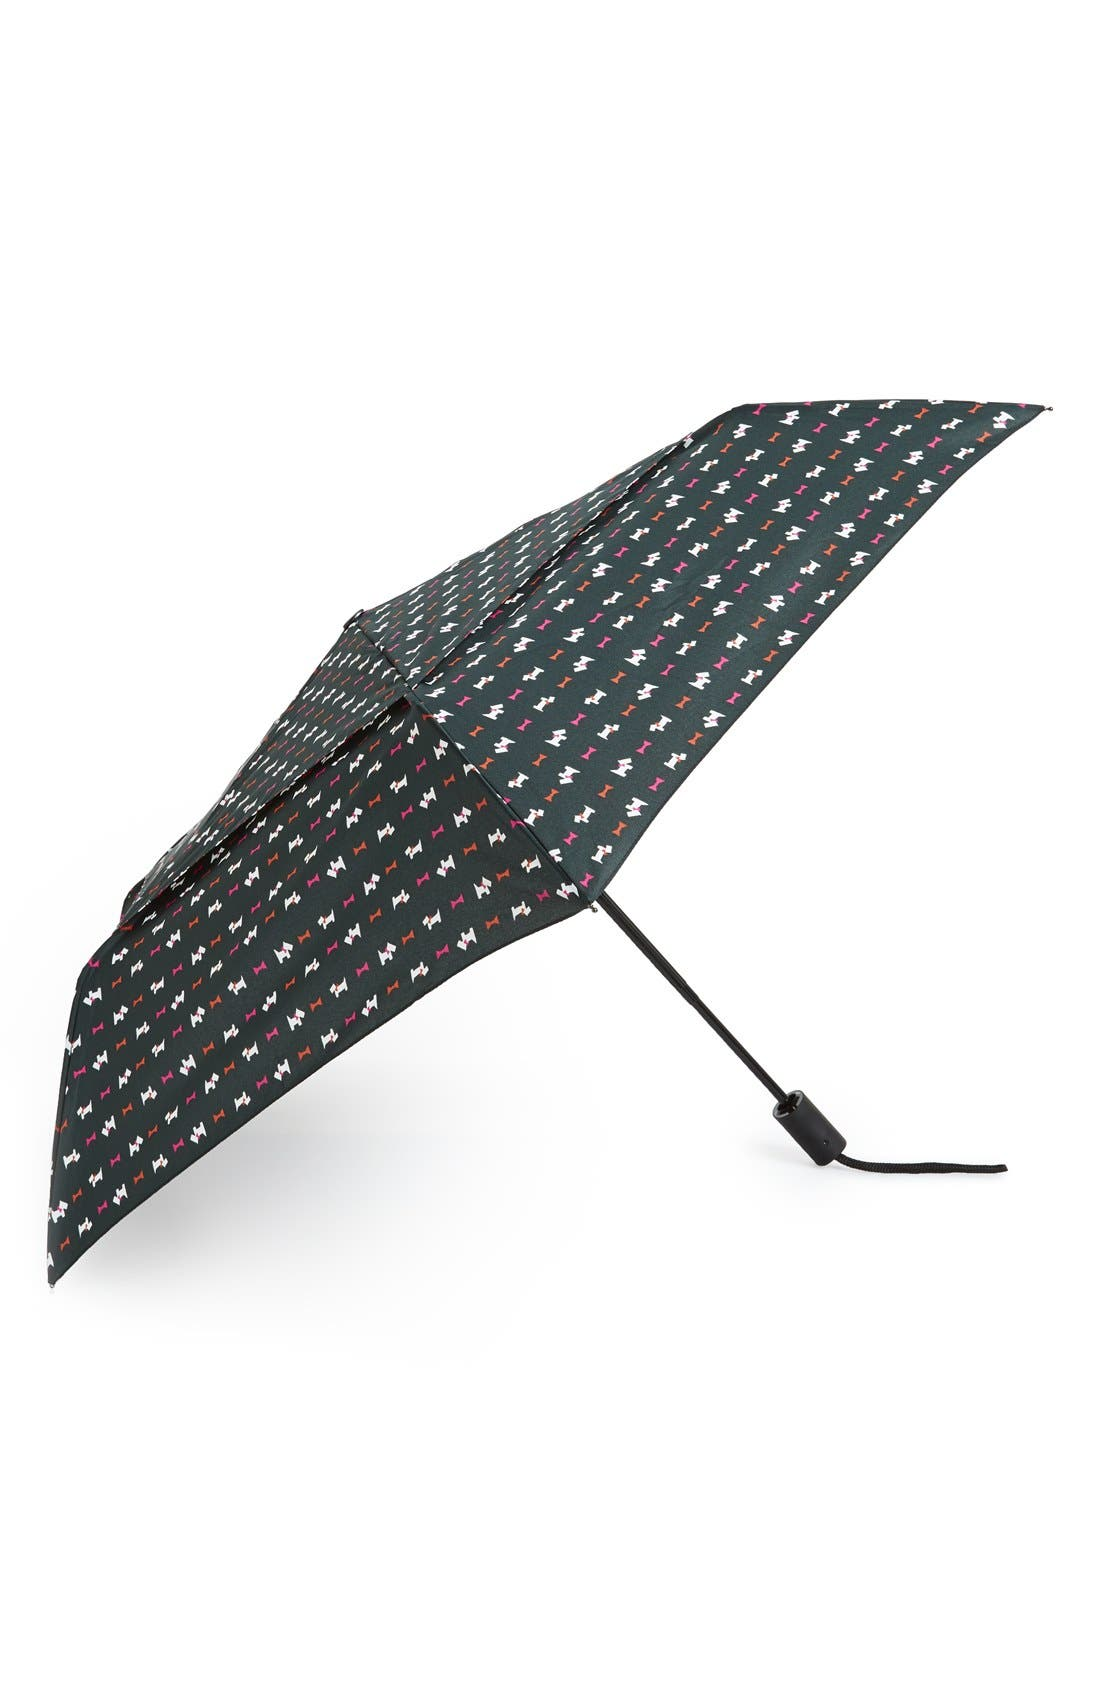 Main Image - ShedRain WindPro® Auto Open & Close Umbrella